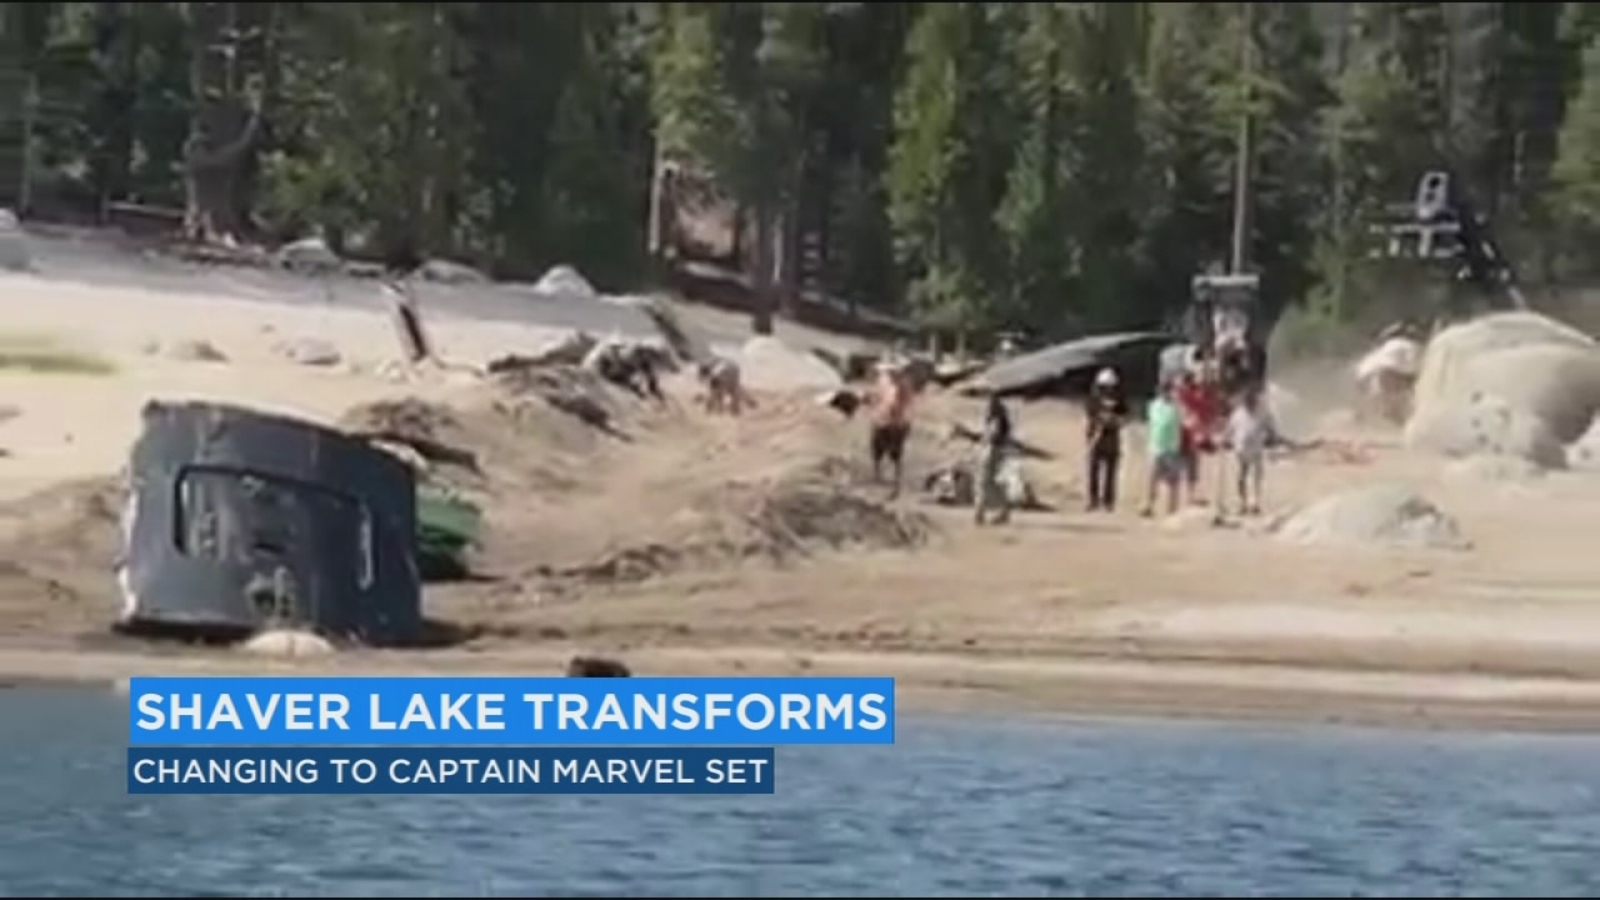 scenes come to life ahead of 'captain marvel' movie shooting at